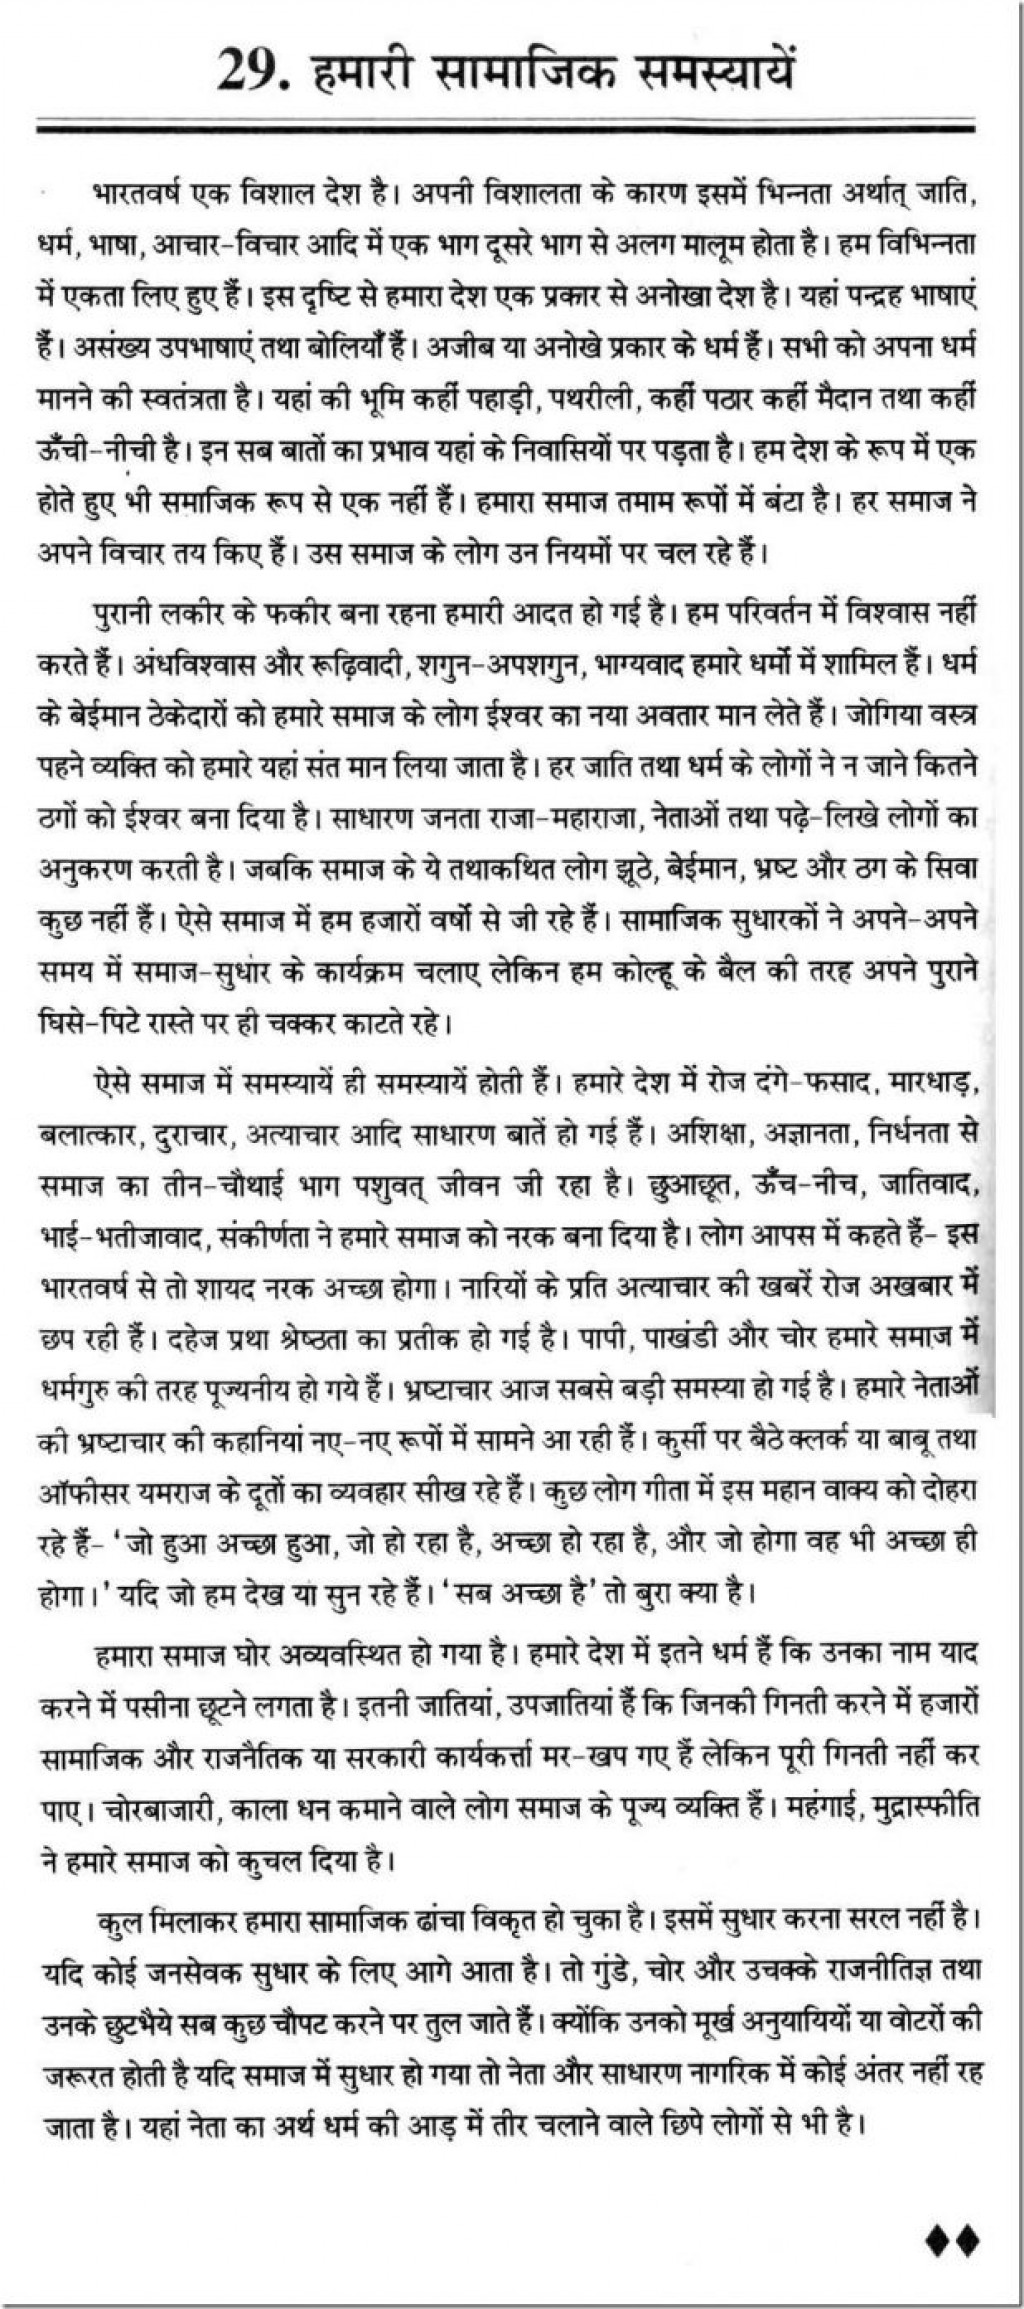 013 Social Issues Essay Example Essays Thumb On In Education America Security Free Topics And Environment Argumentative Pakistan Photo Pdf India Satirical Hindi To Write Outstanding Large